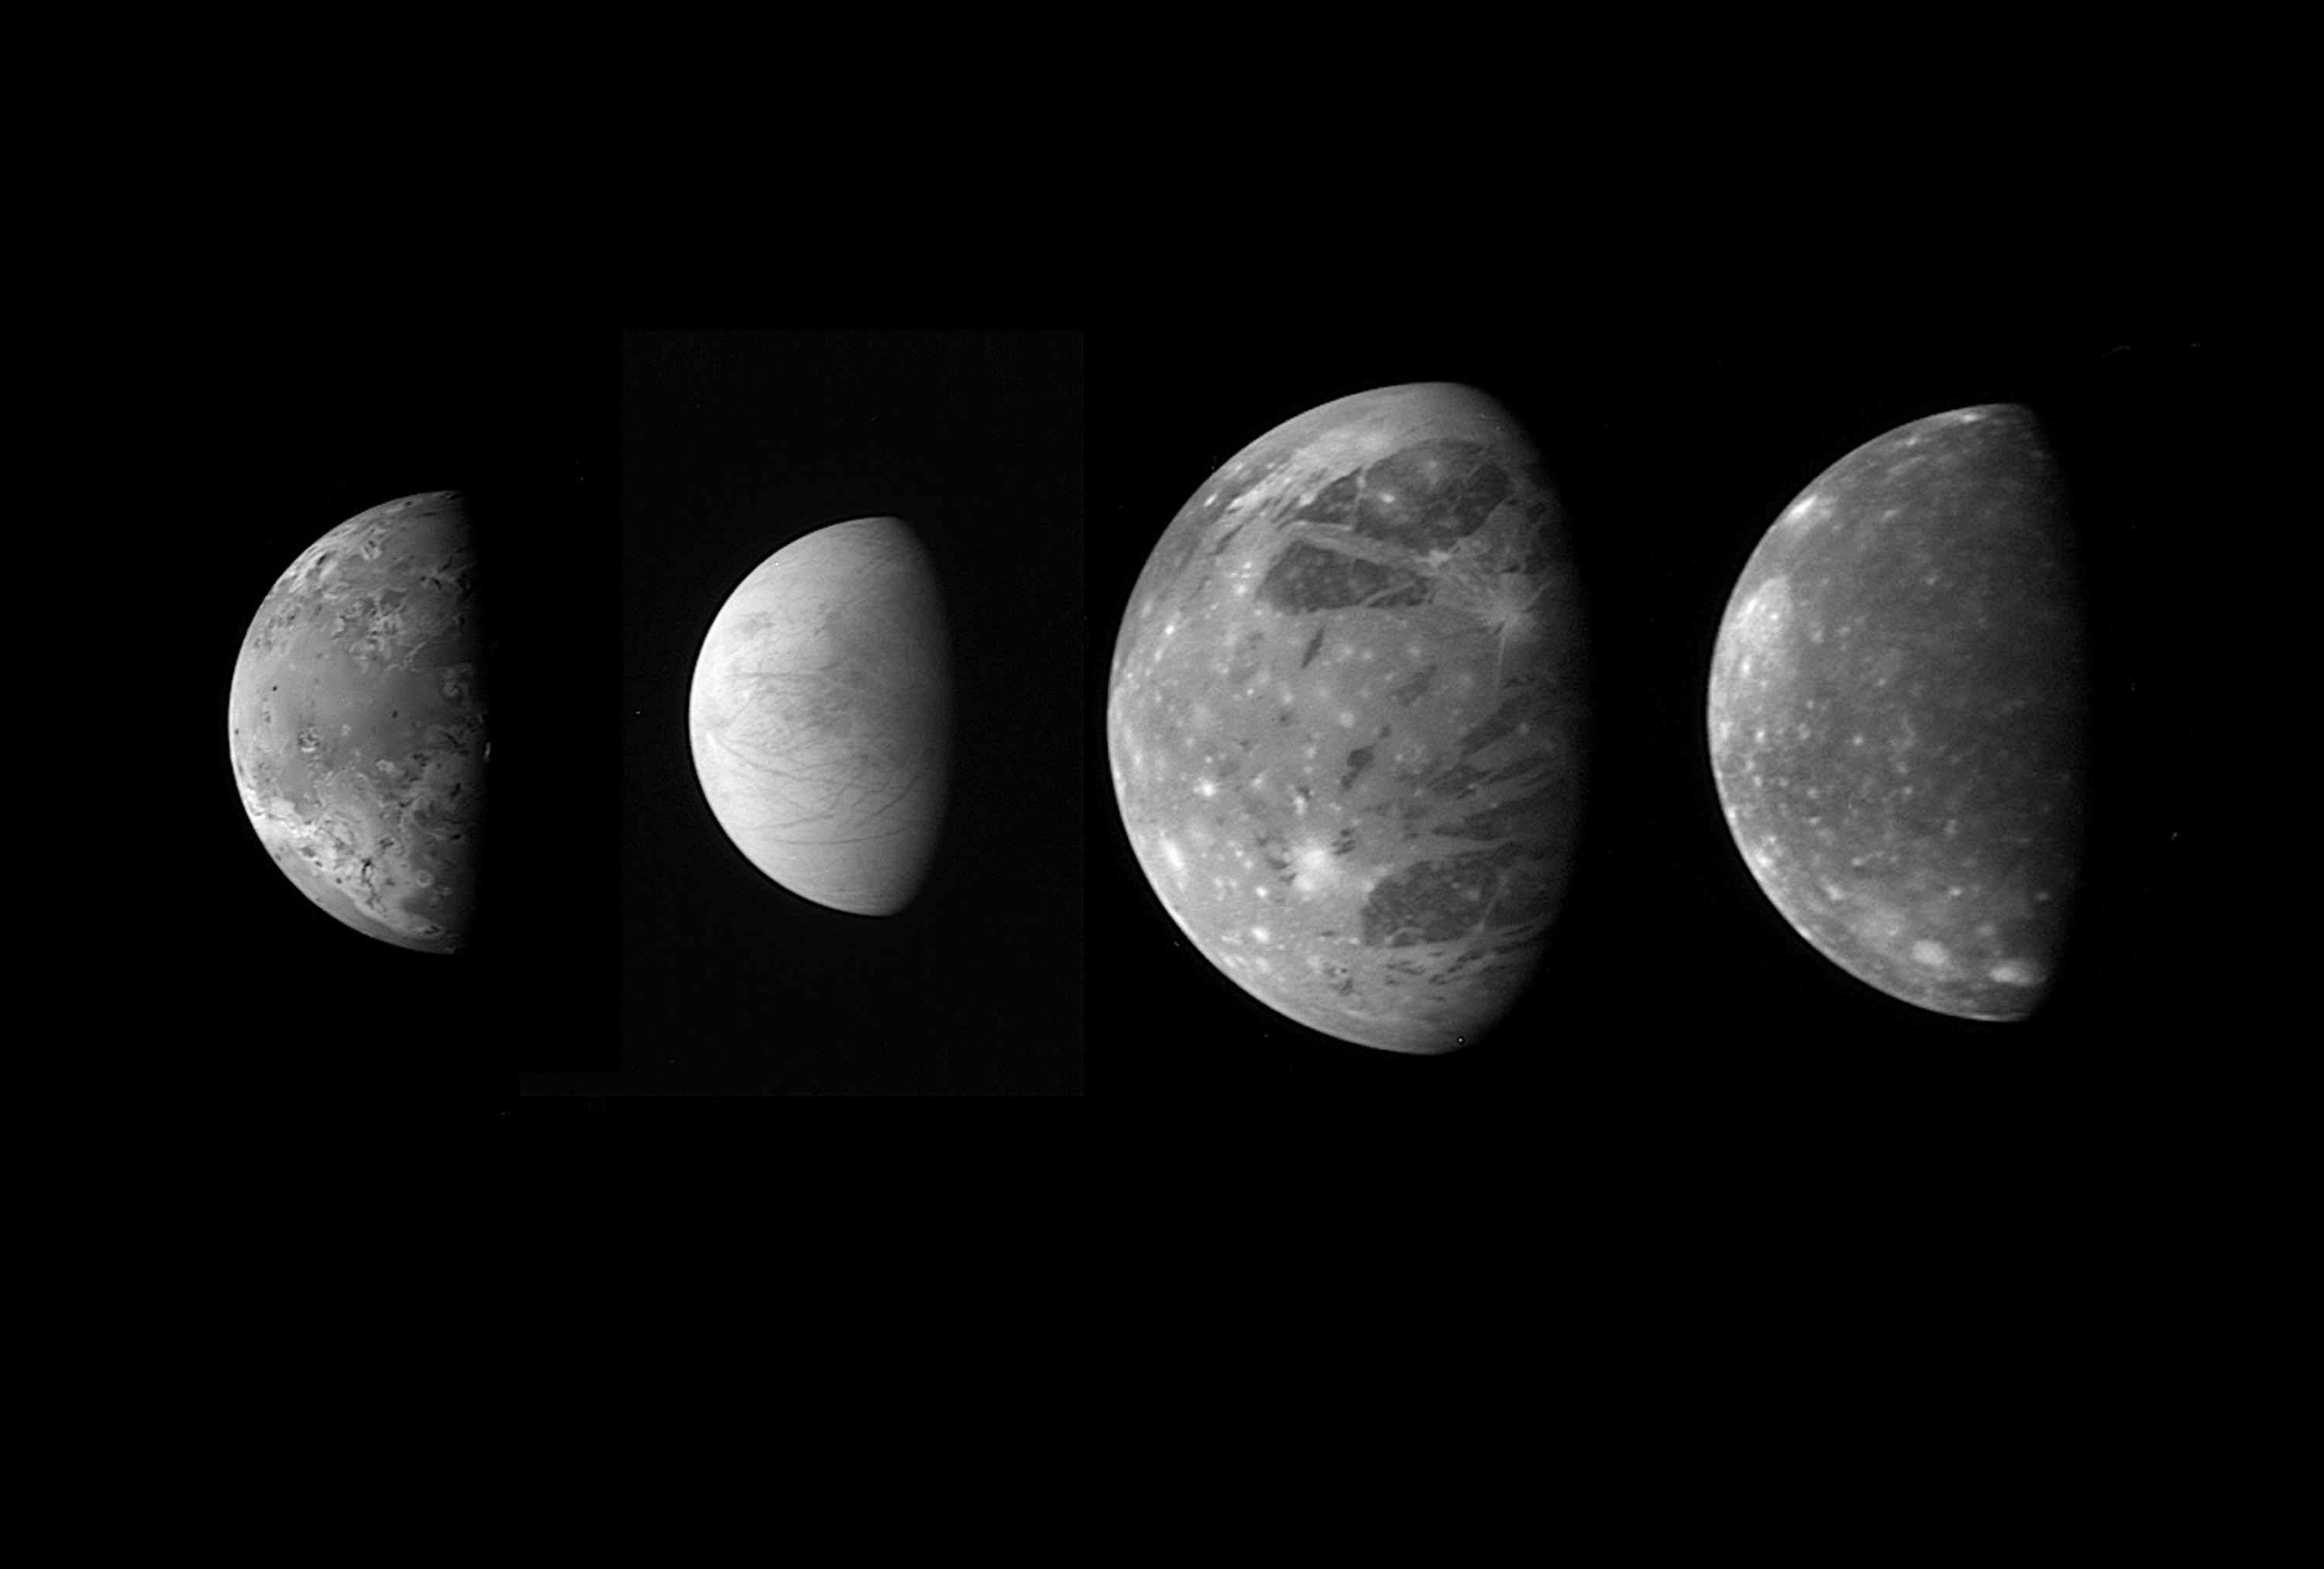 Photos: The Galilean Moons of Jupiter